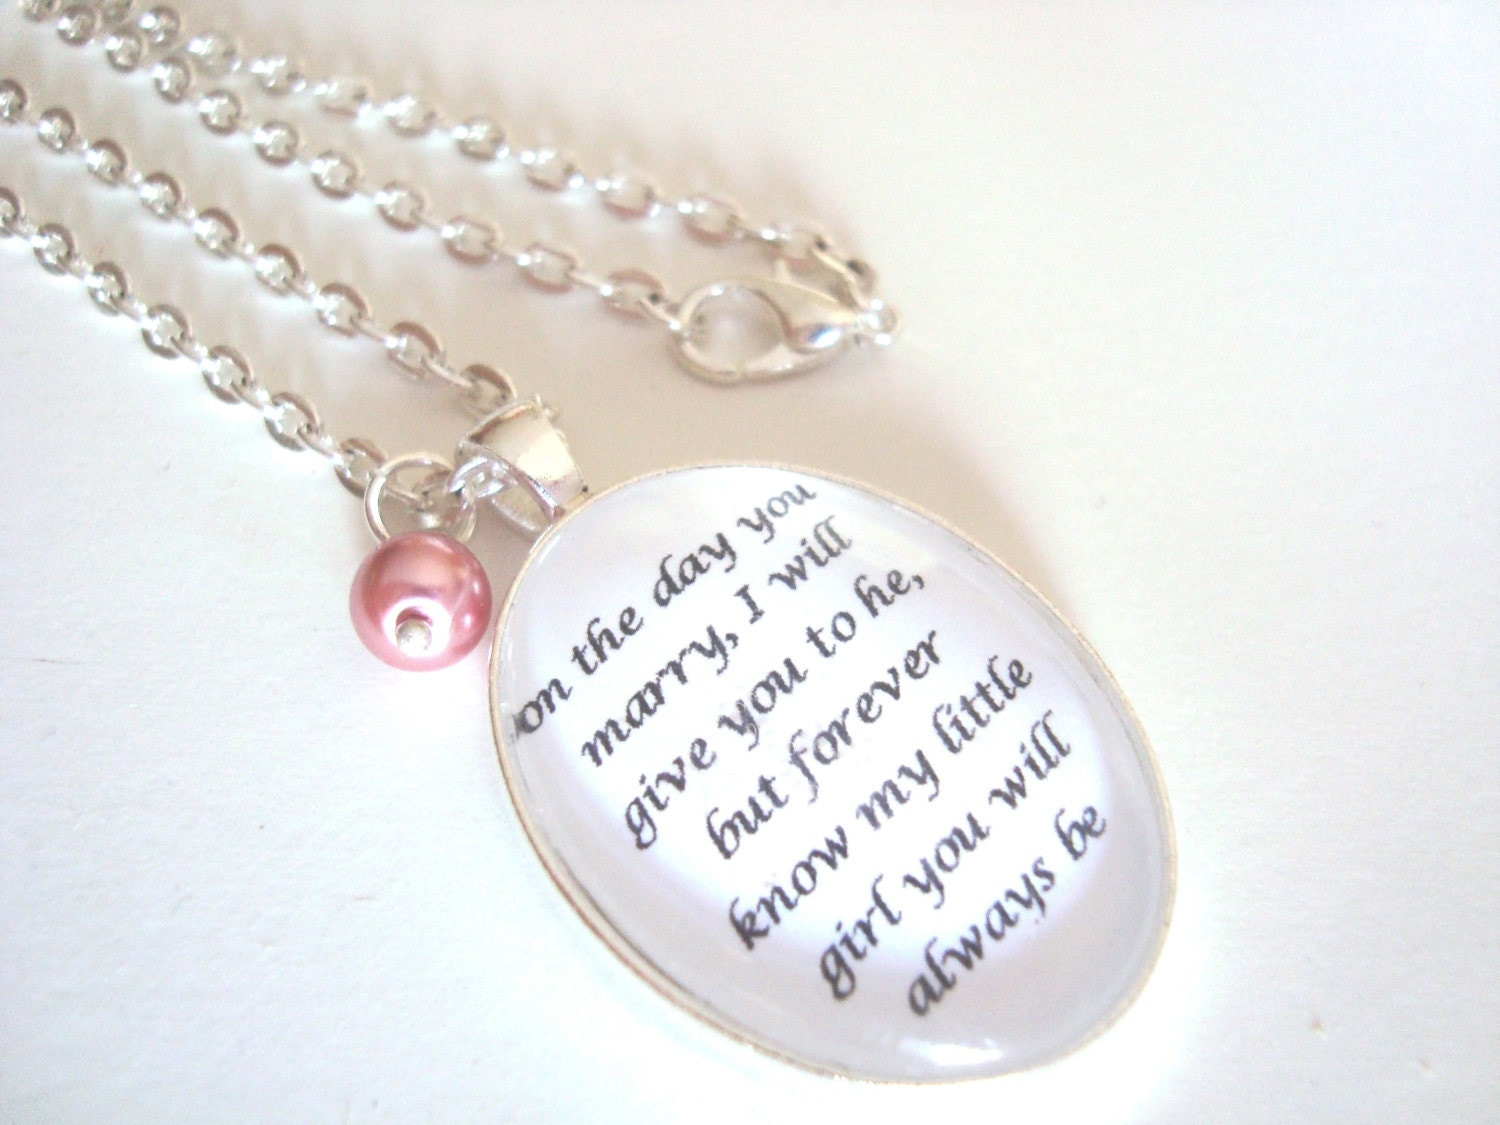 Father to Daughter bridal pendant necklacegift for daughter